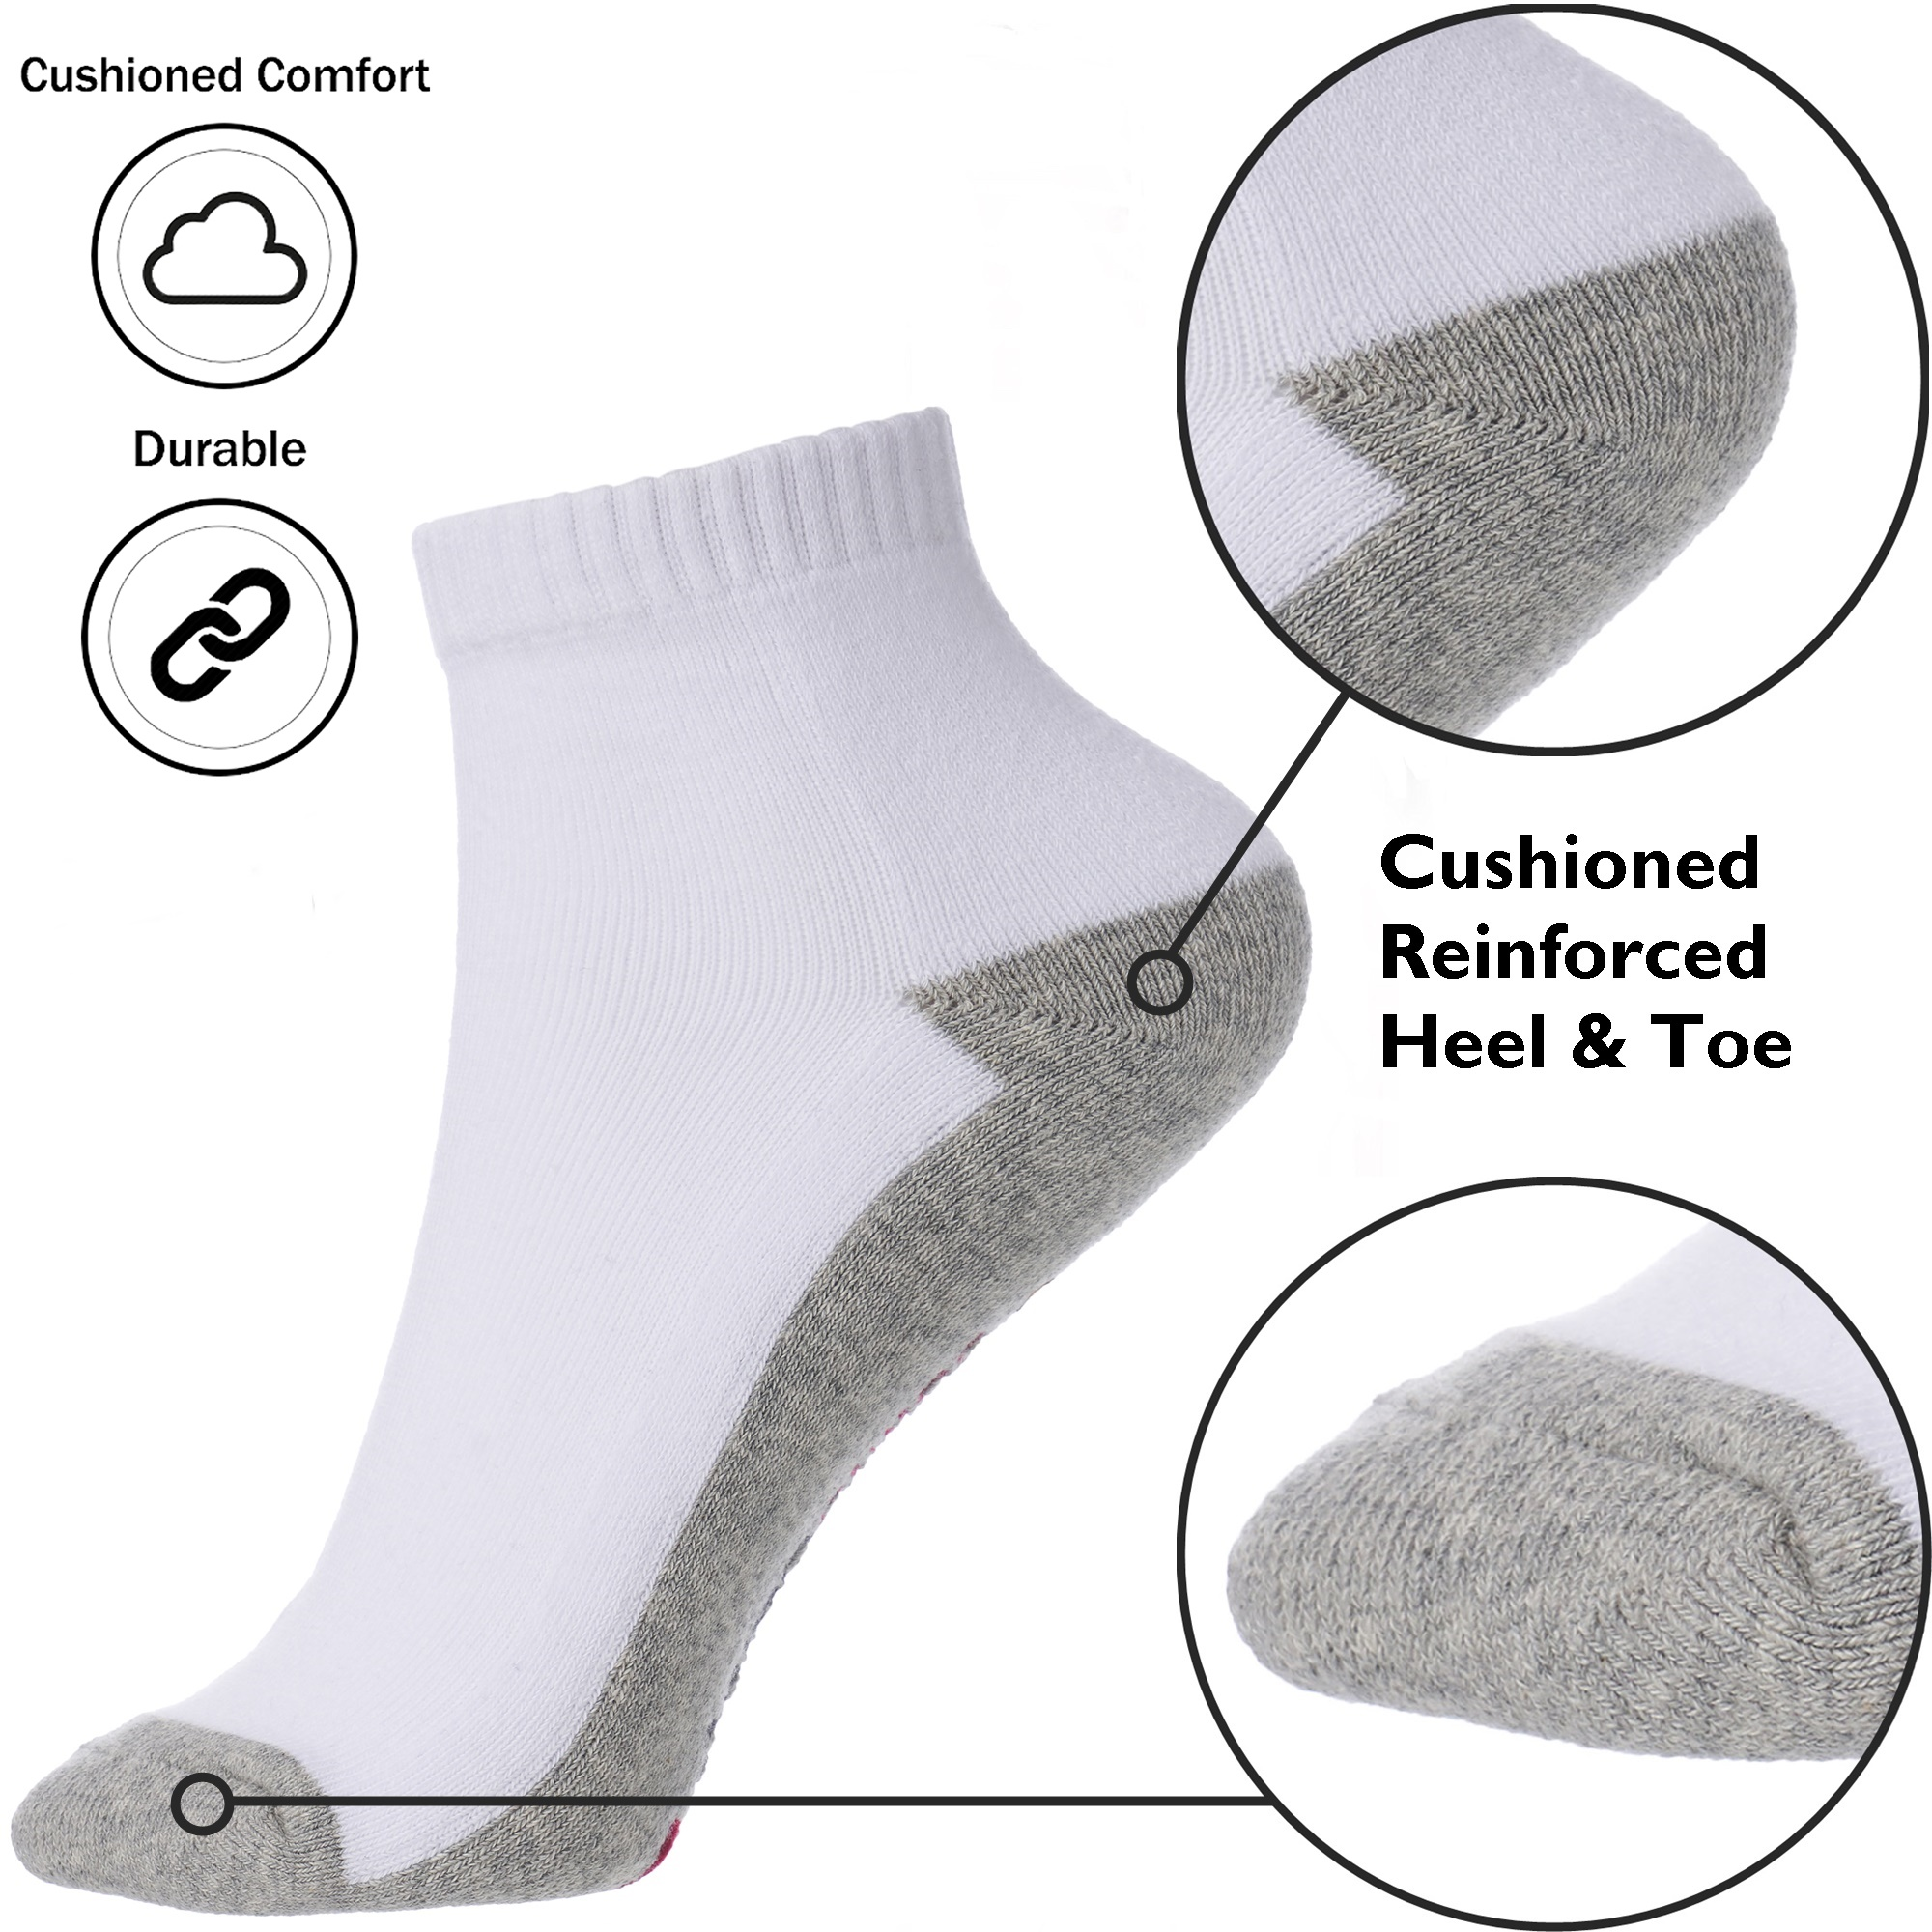 Alpine-Swiss-Mens-8-Pack-Ankle-Socks-Low-Cut-Cotton-Athletic-Sock-Shoe-Size-6-12 thumbnail 26